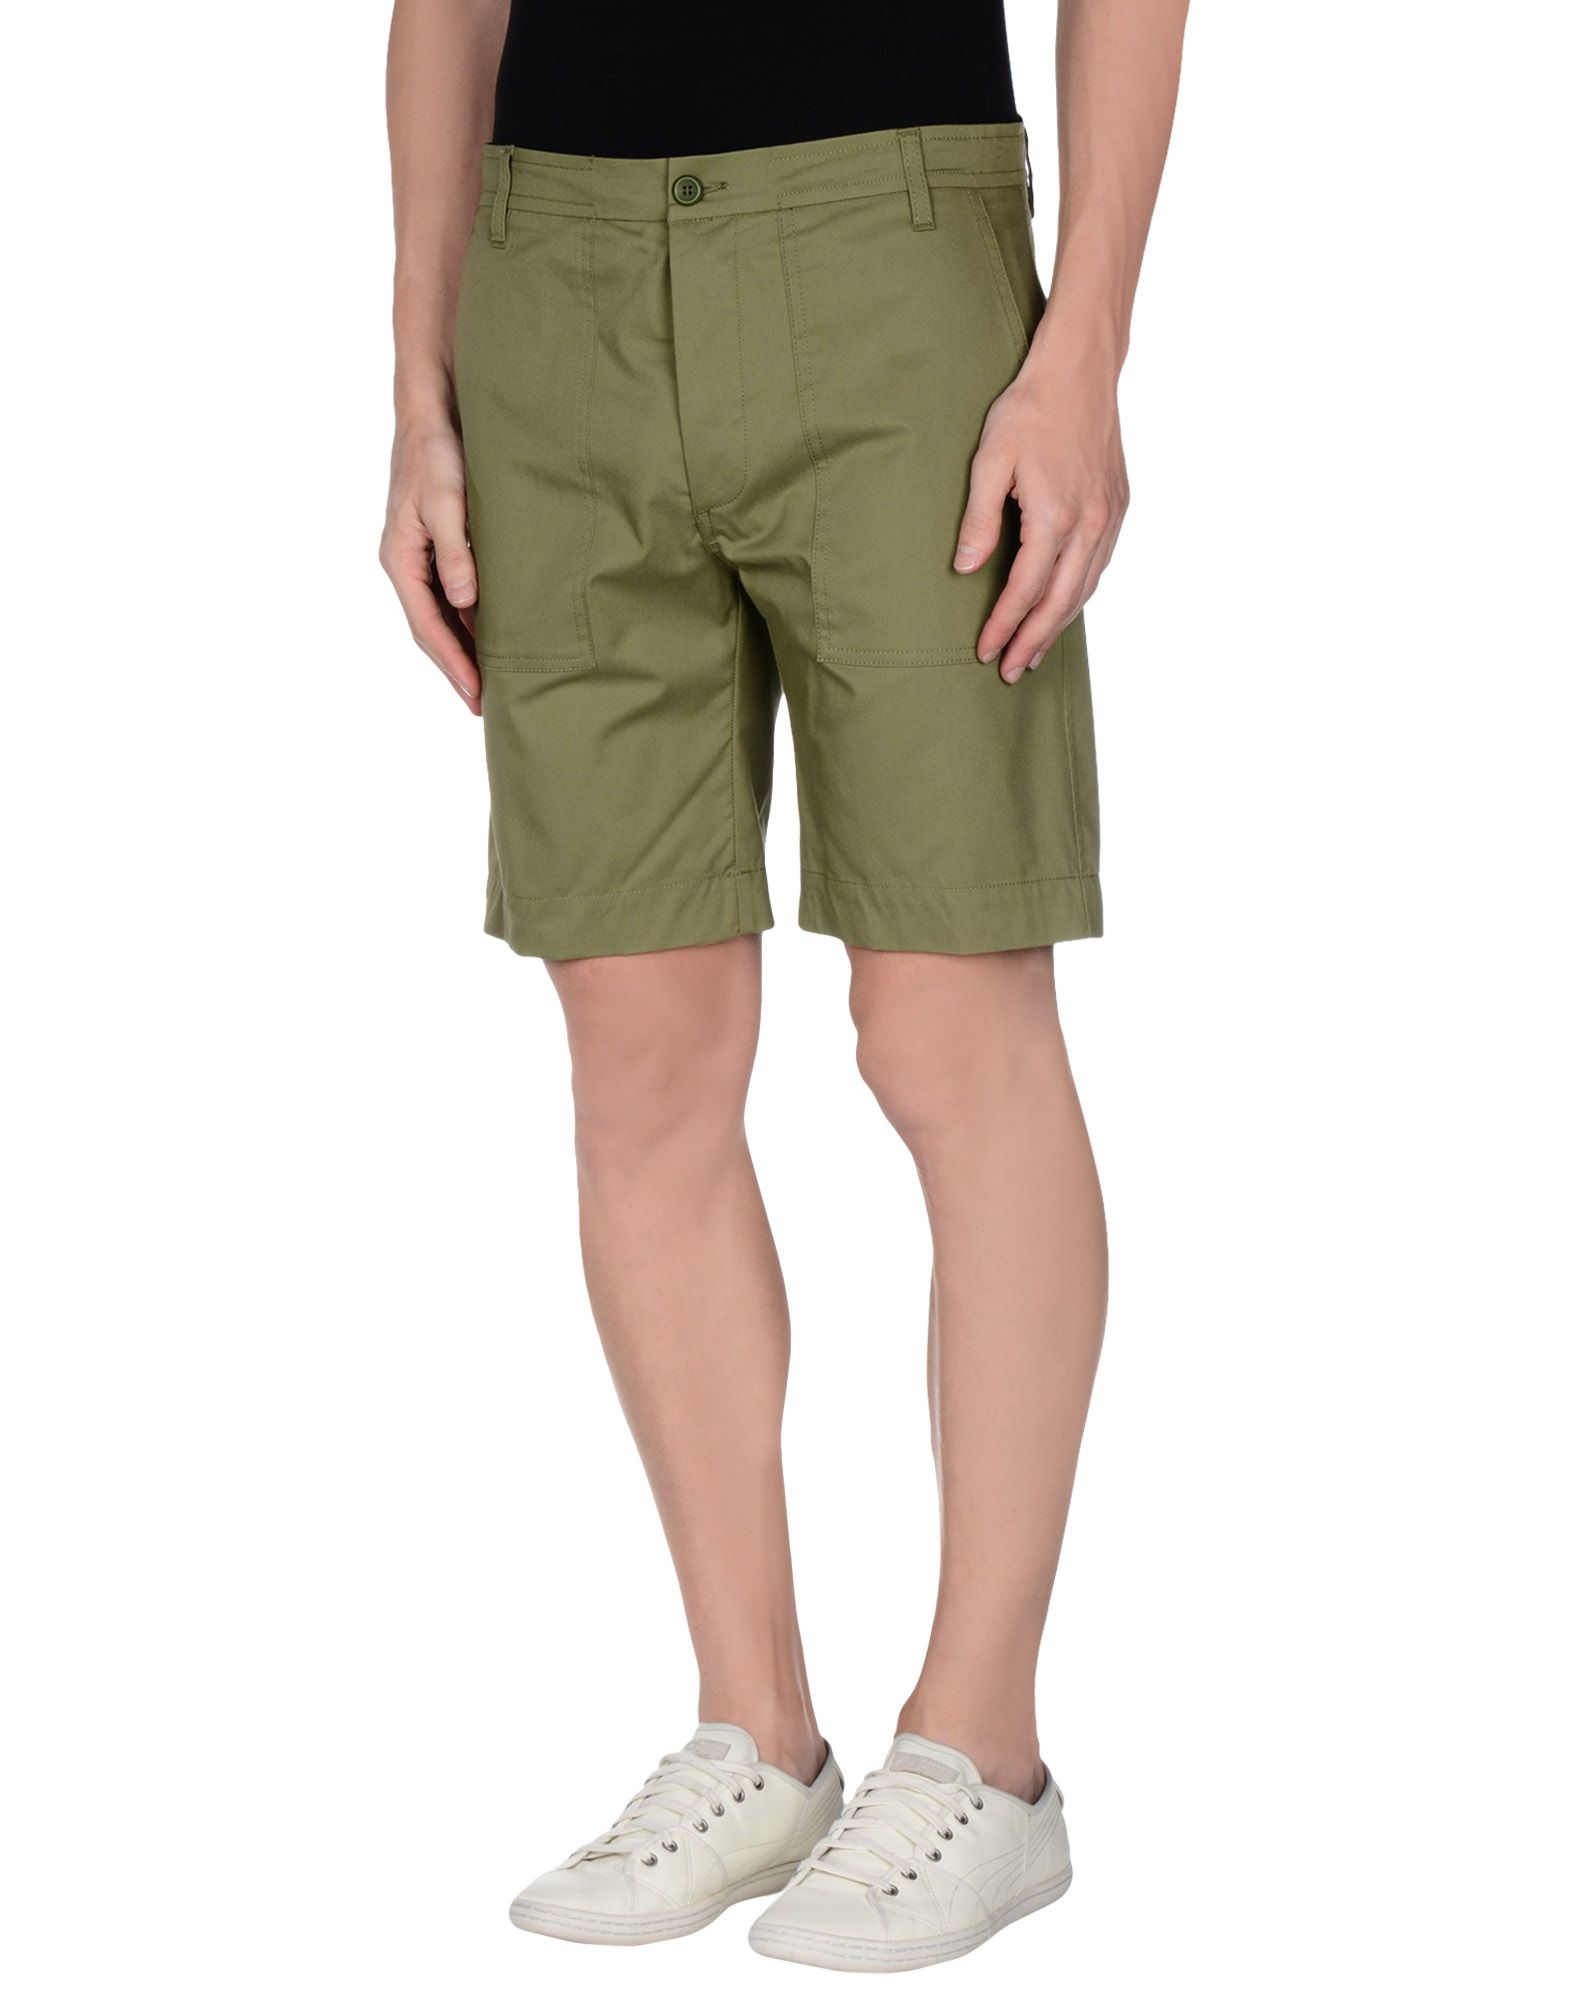 Find great deals on eBay for mens' bermuda shorts. Shop with confidence.